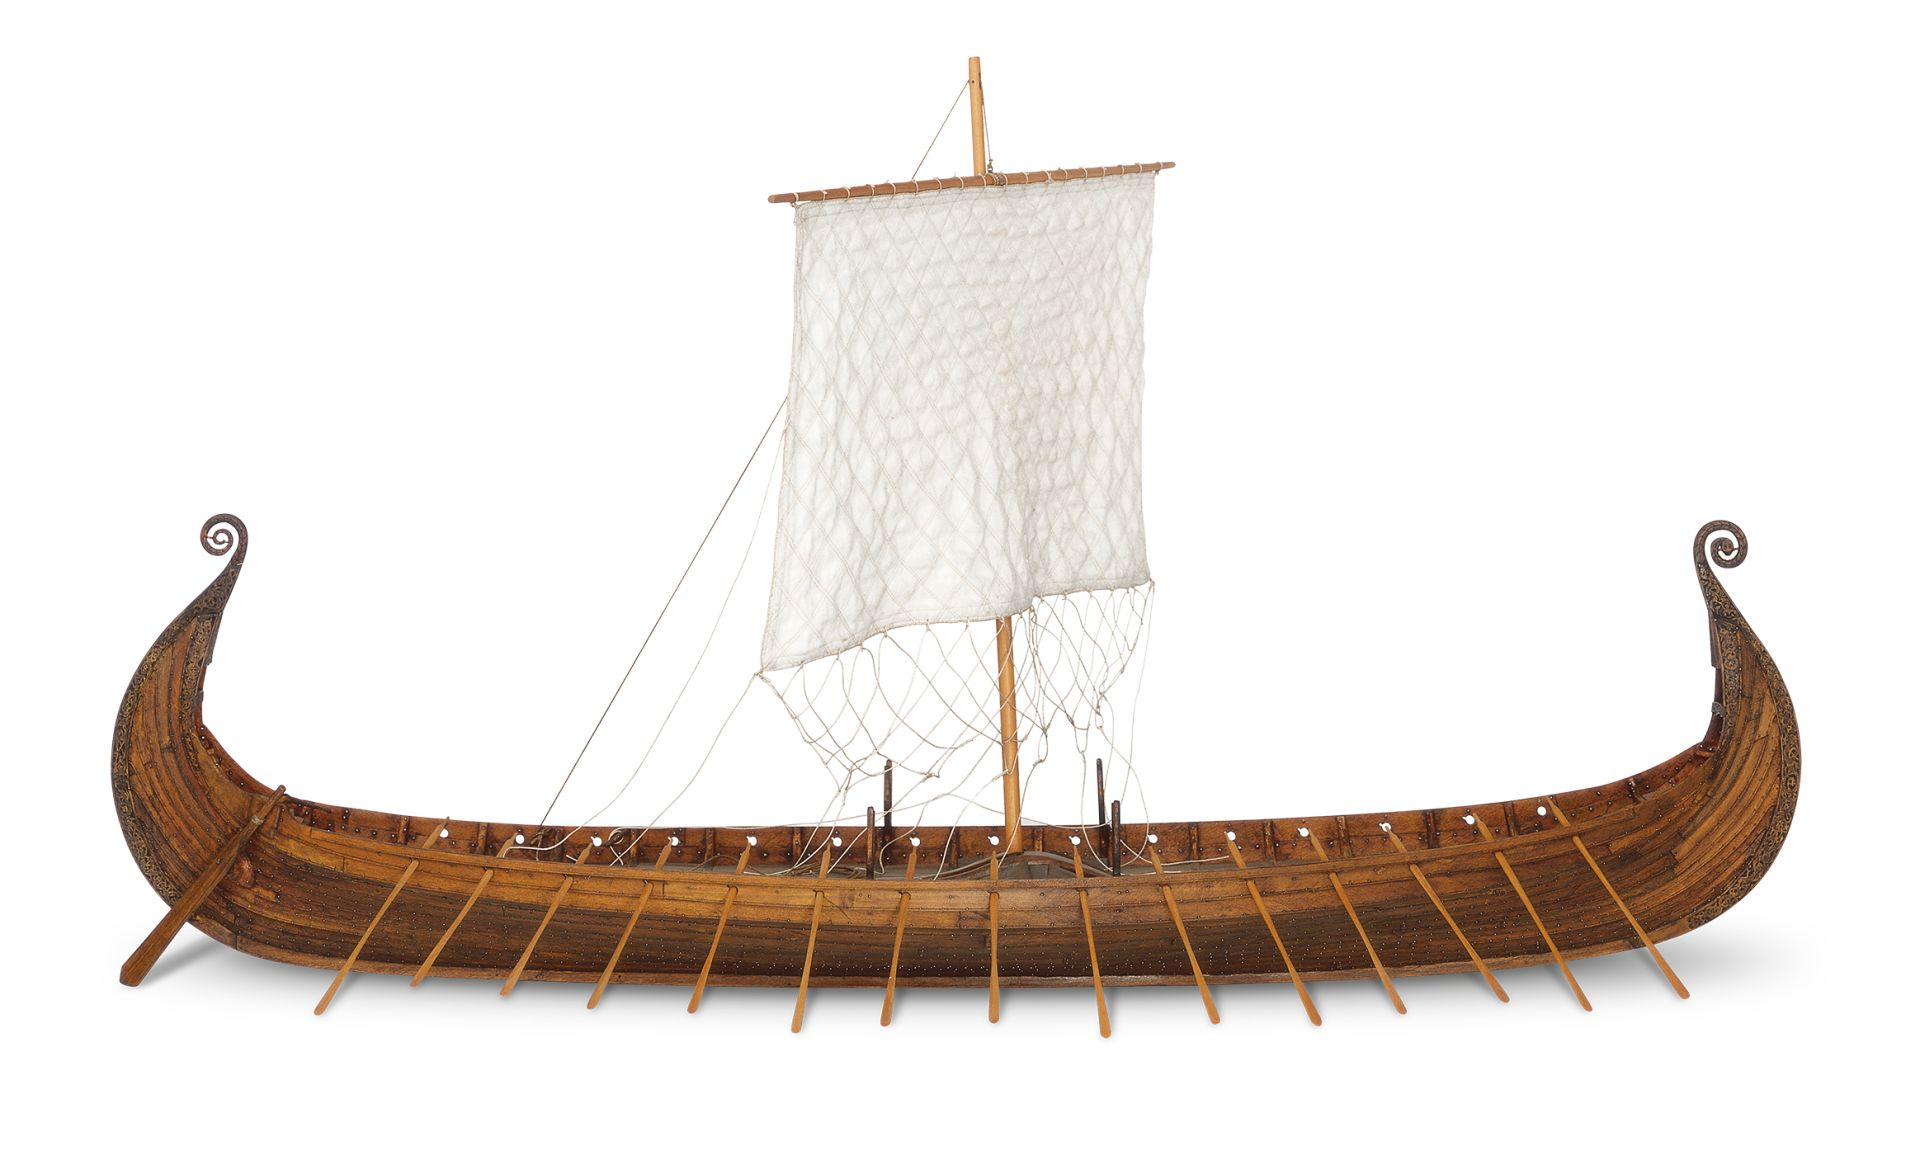 Viking Longships – Wikipedia